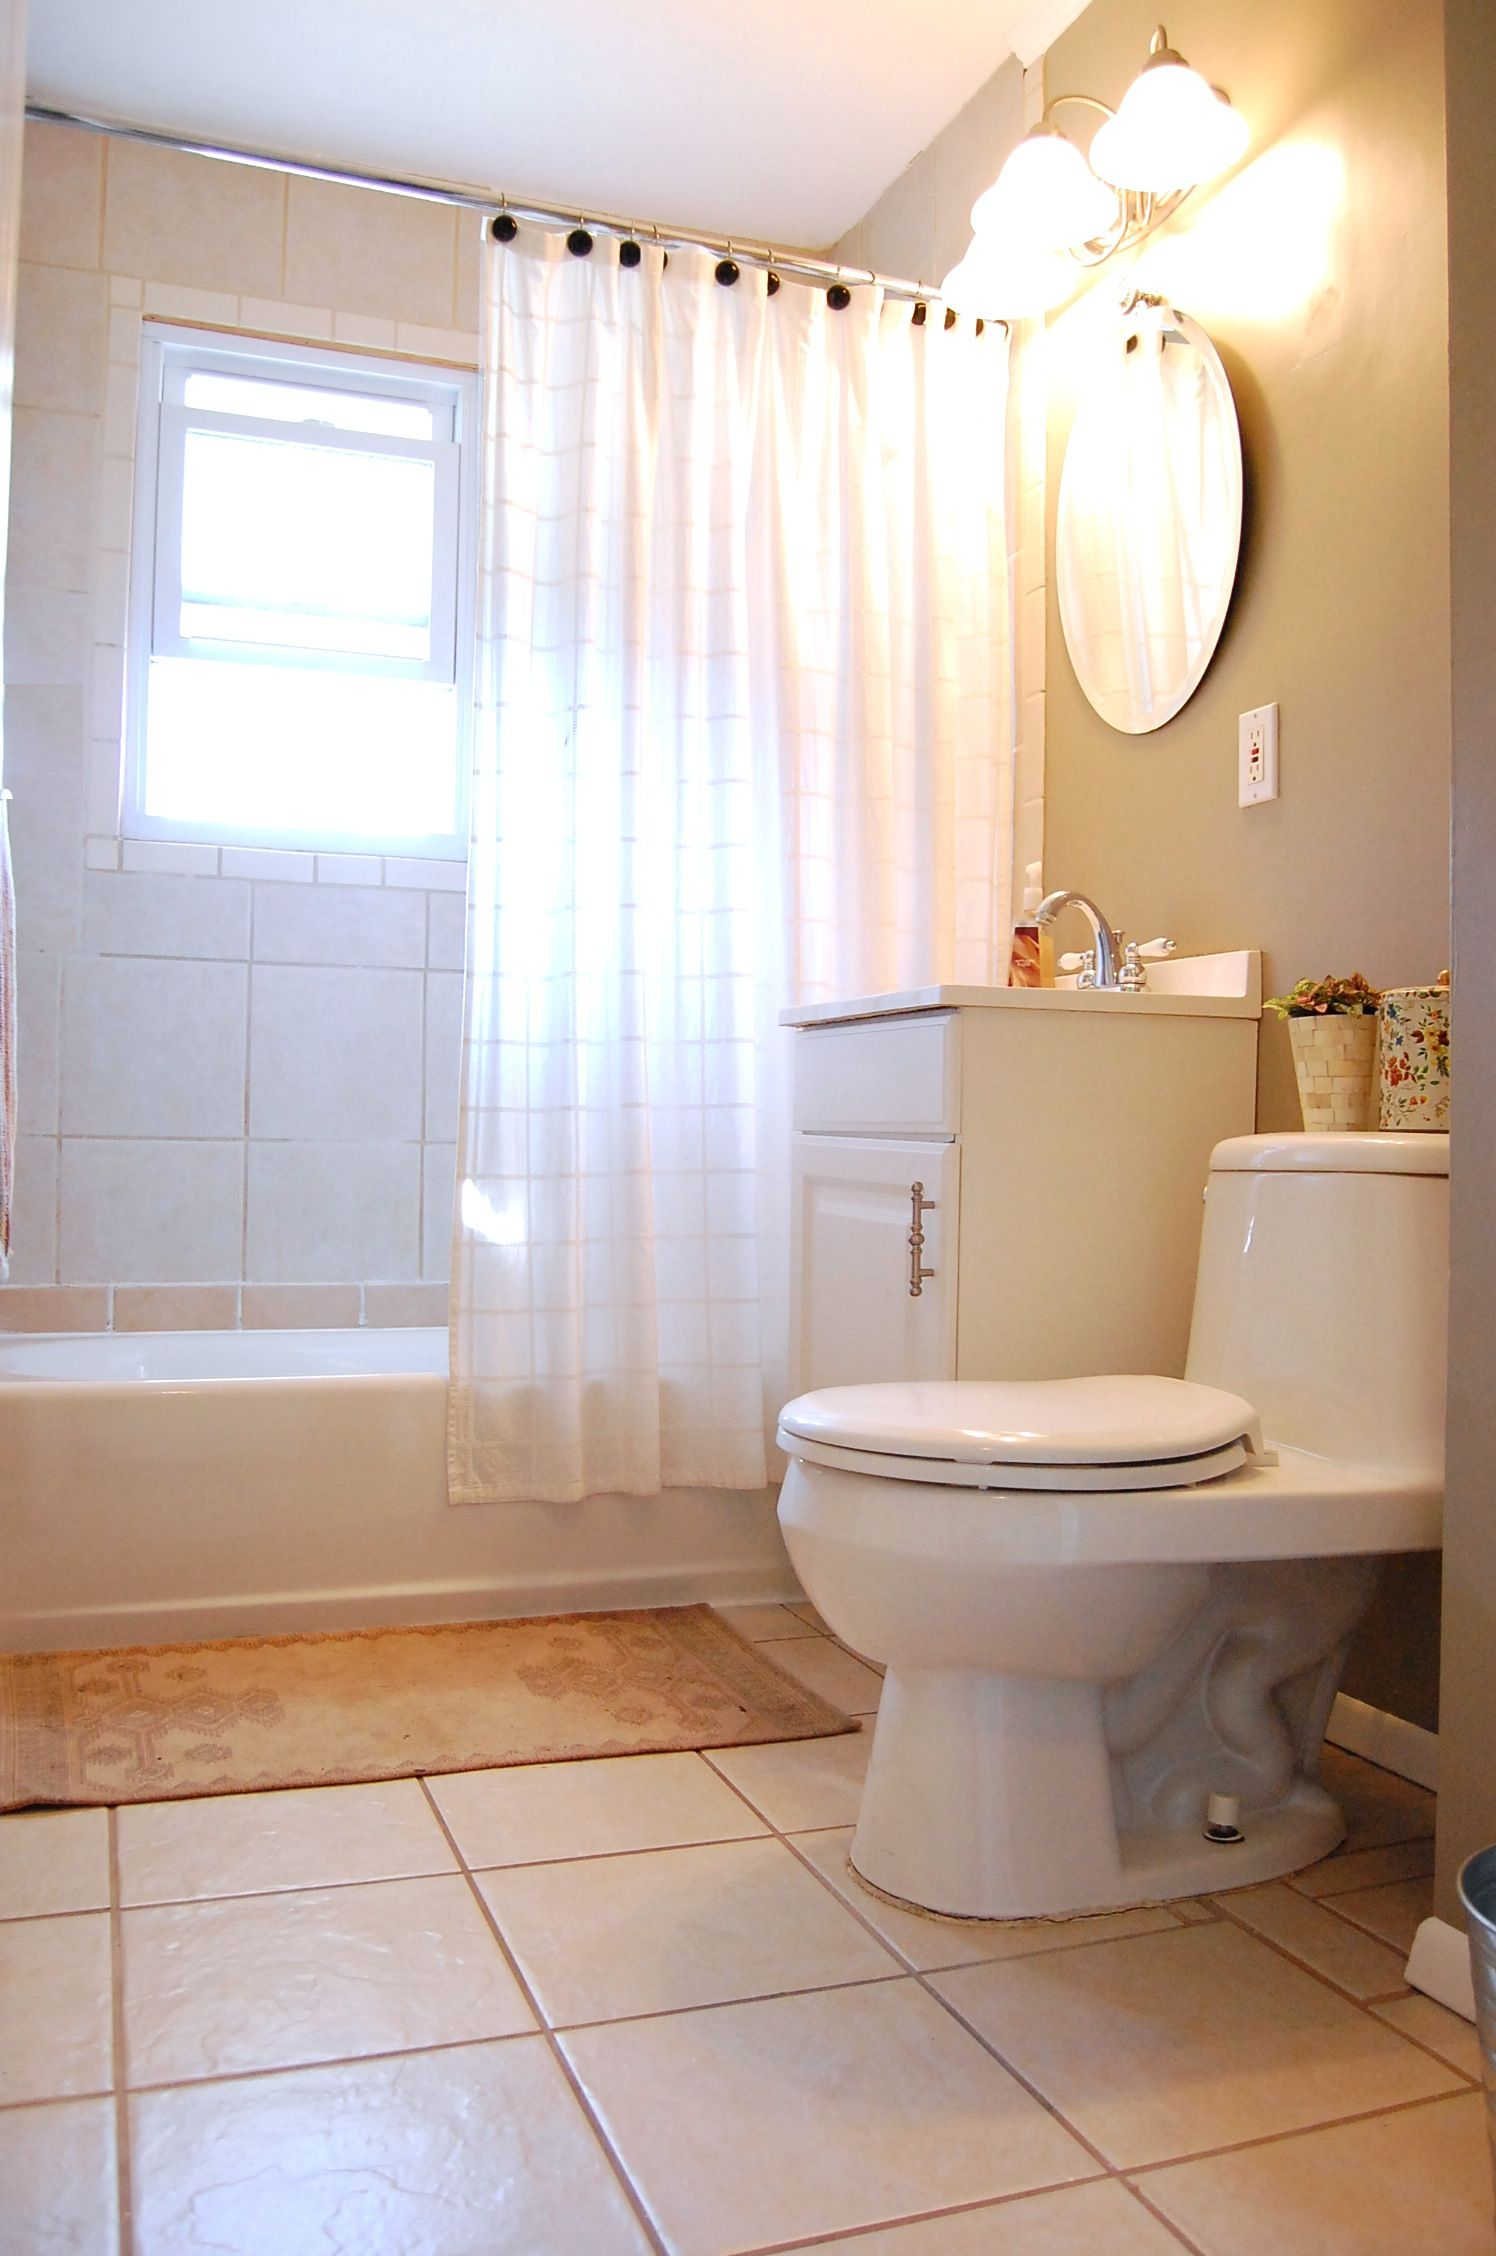 What Is The Most Popular Paint Color For Bathroom